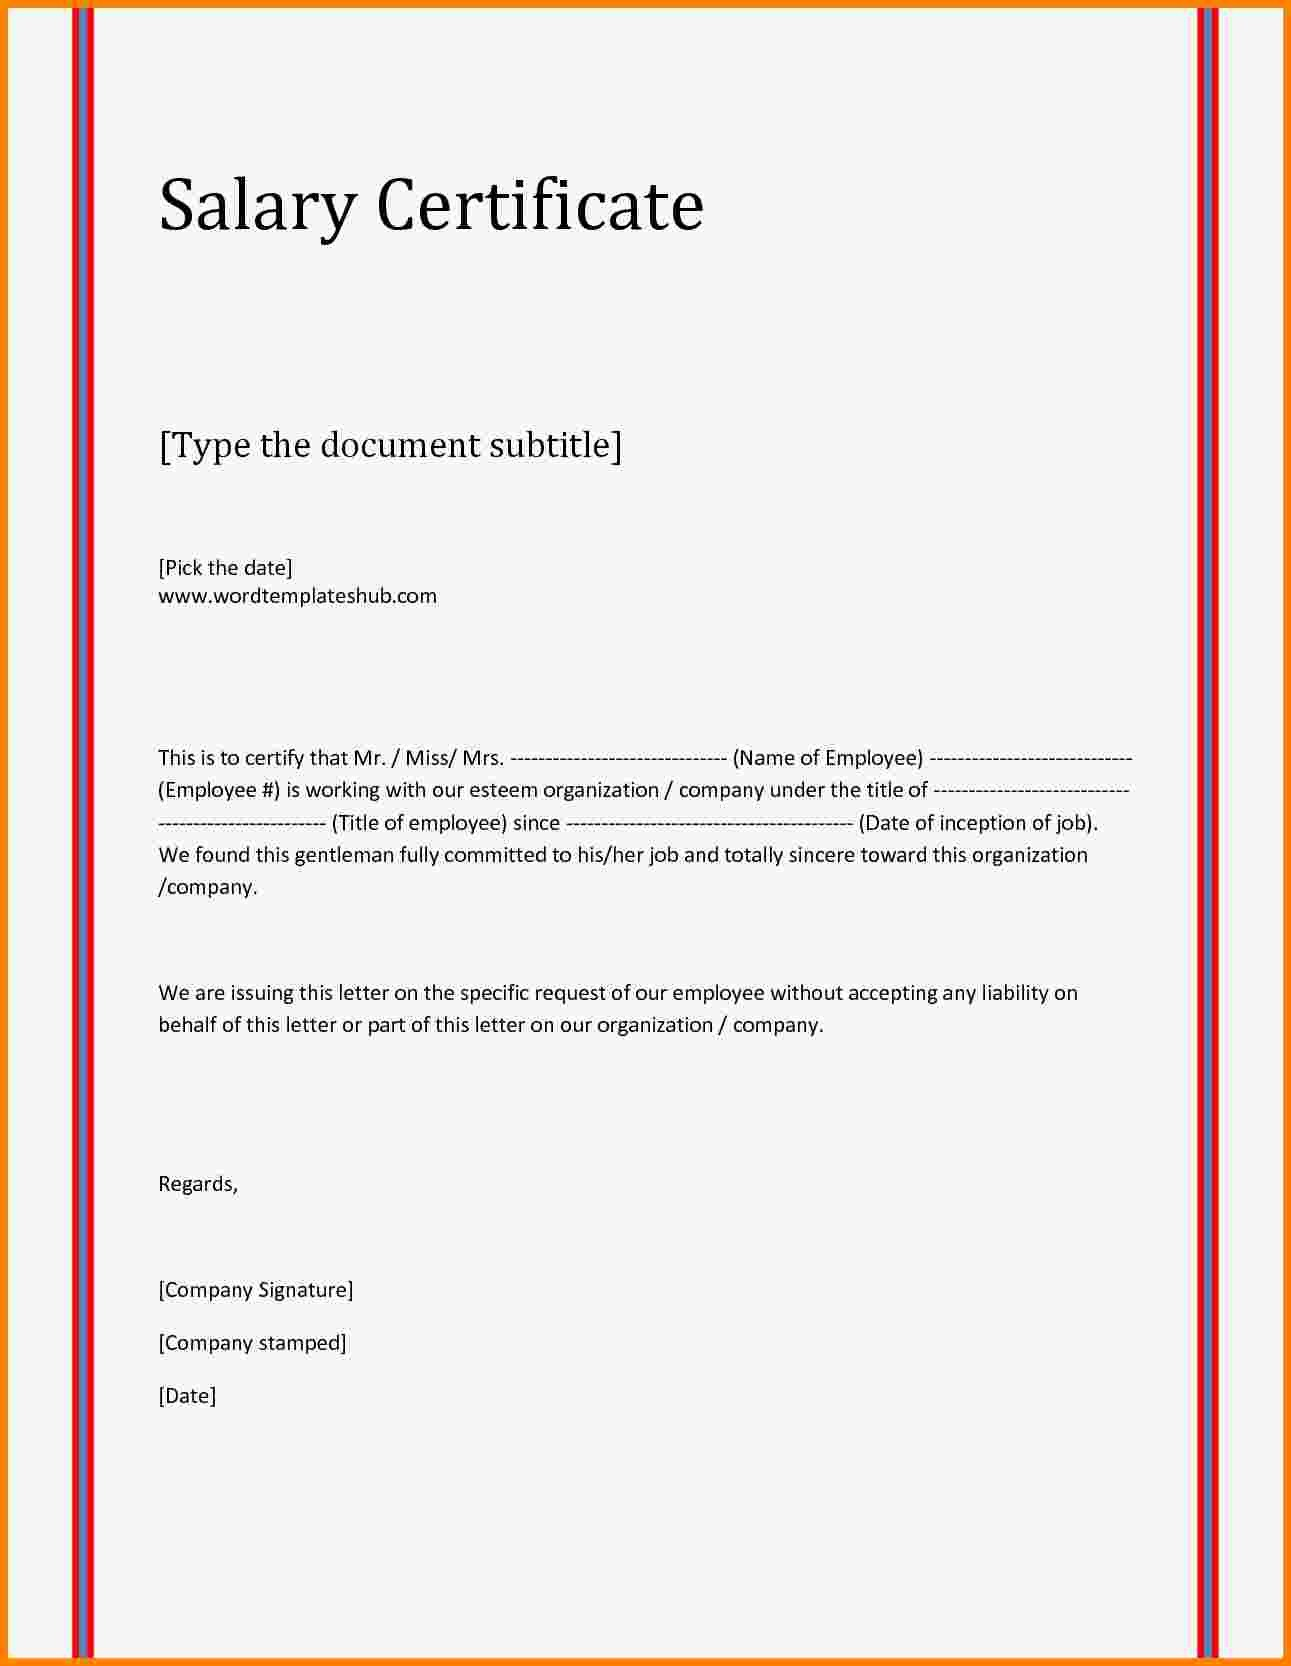 Format A Letter In Word Elegant 7 Salary Letter format Word